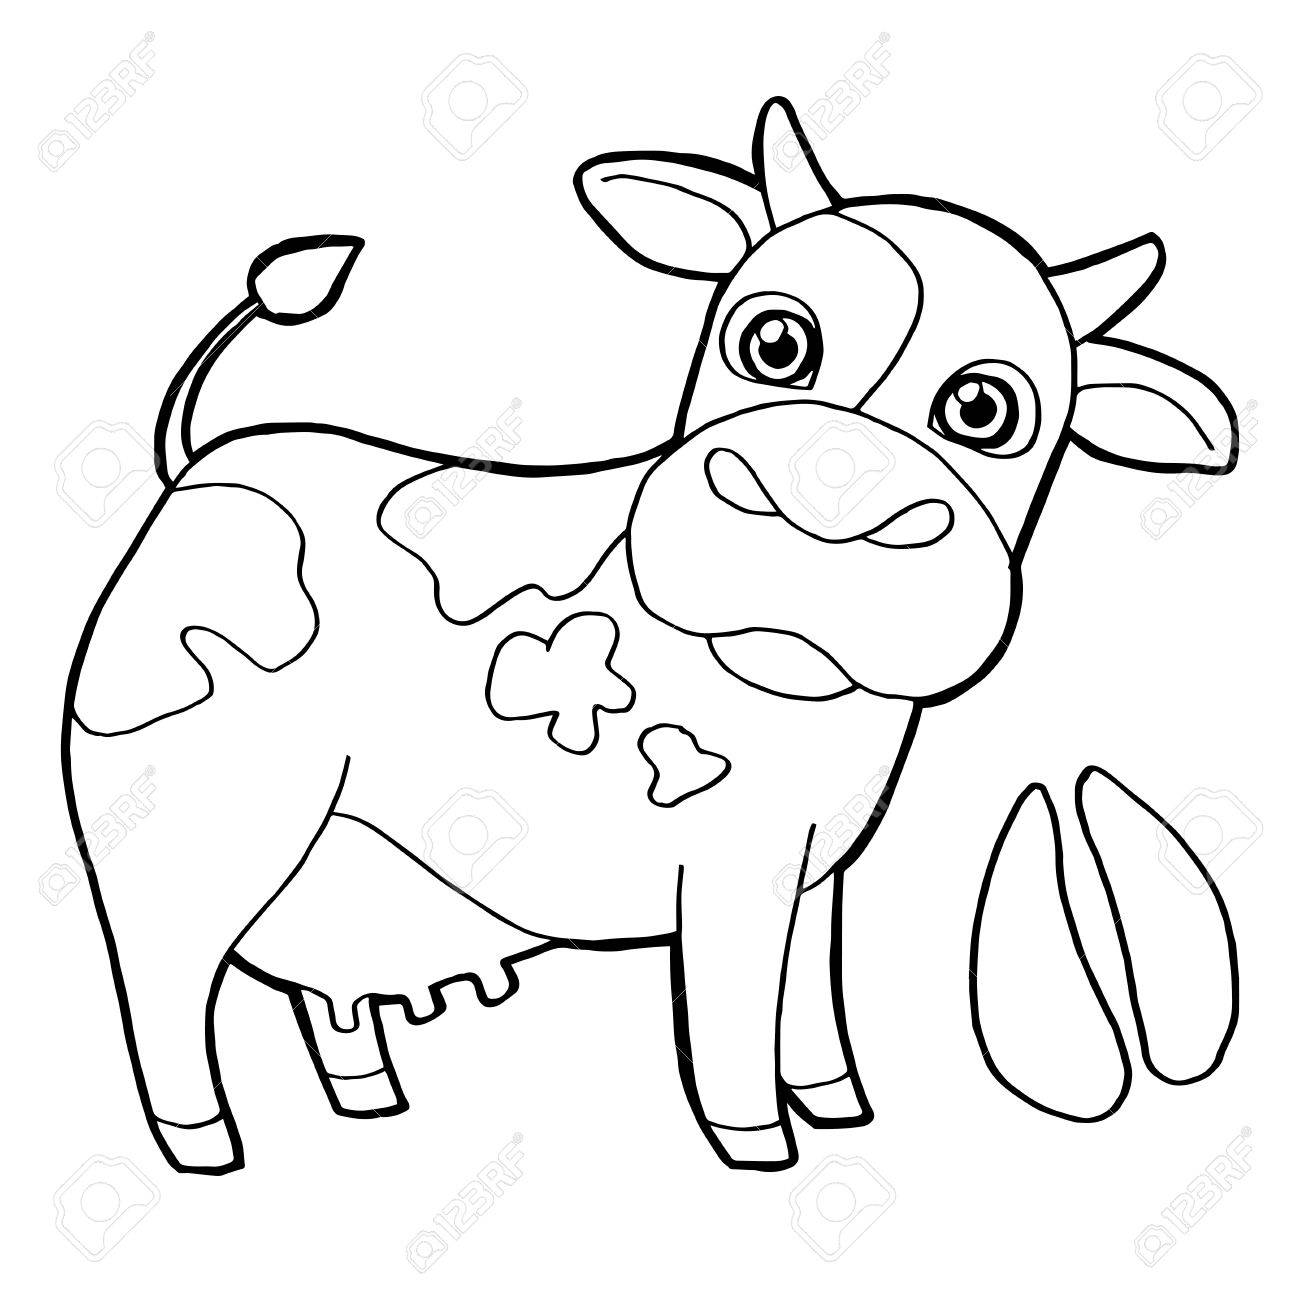 Cattle With Paw Print Coloring Pages Vector Stock